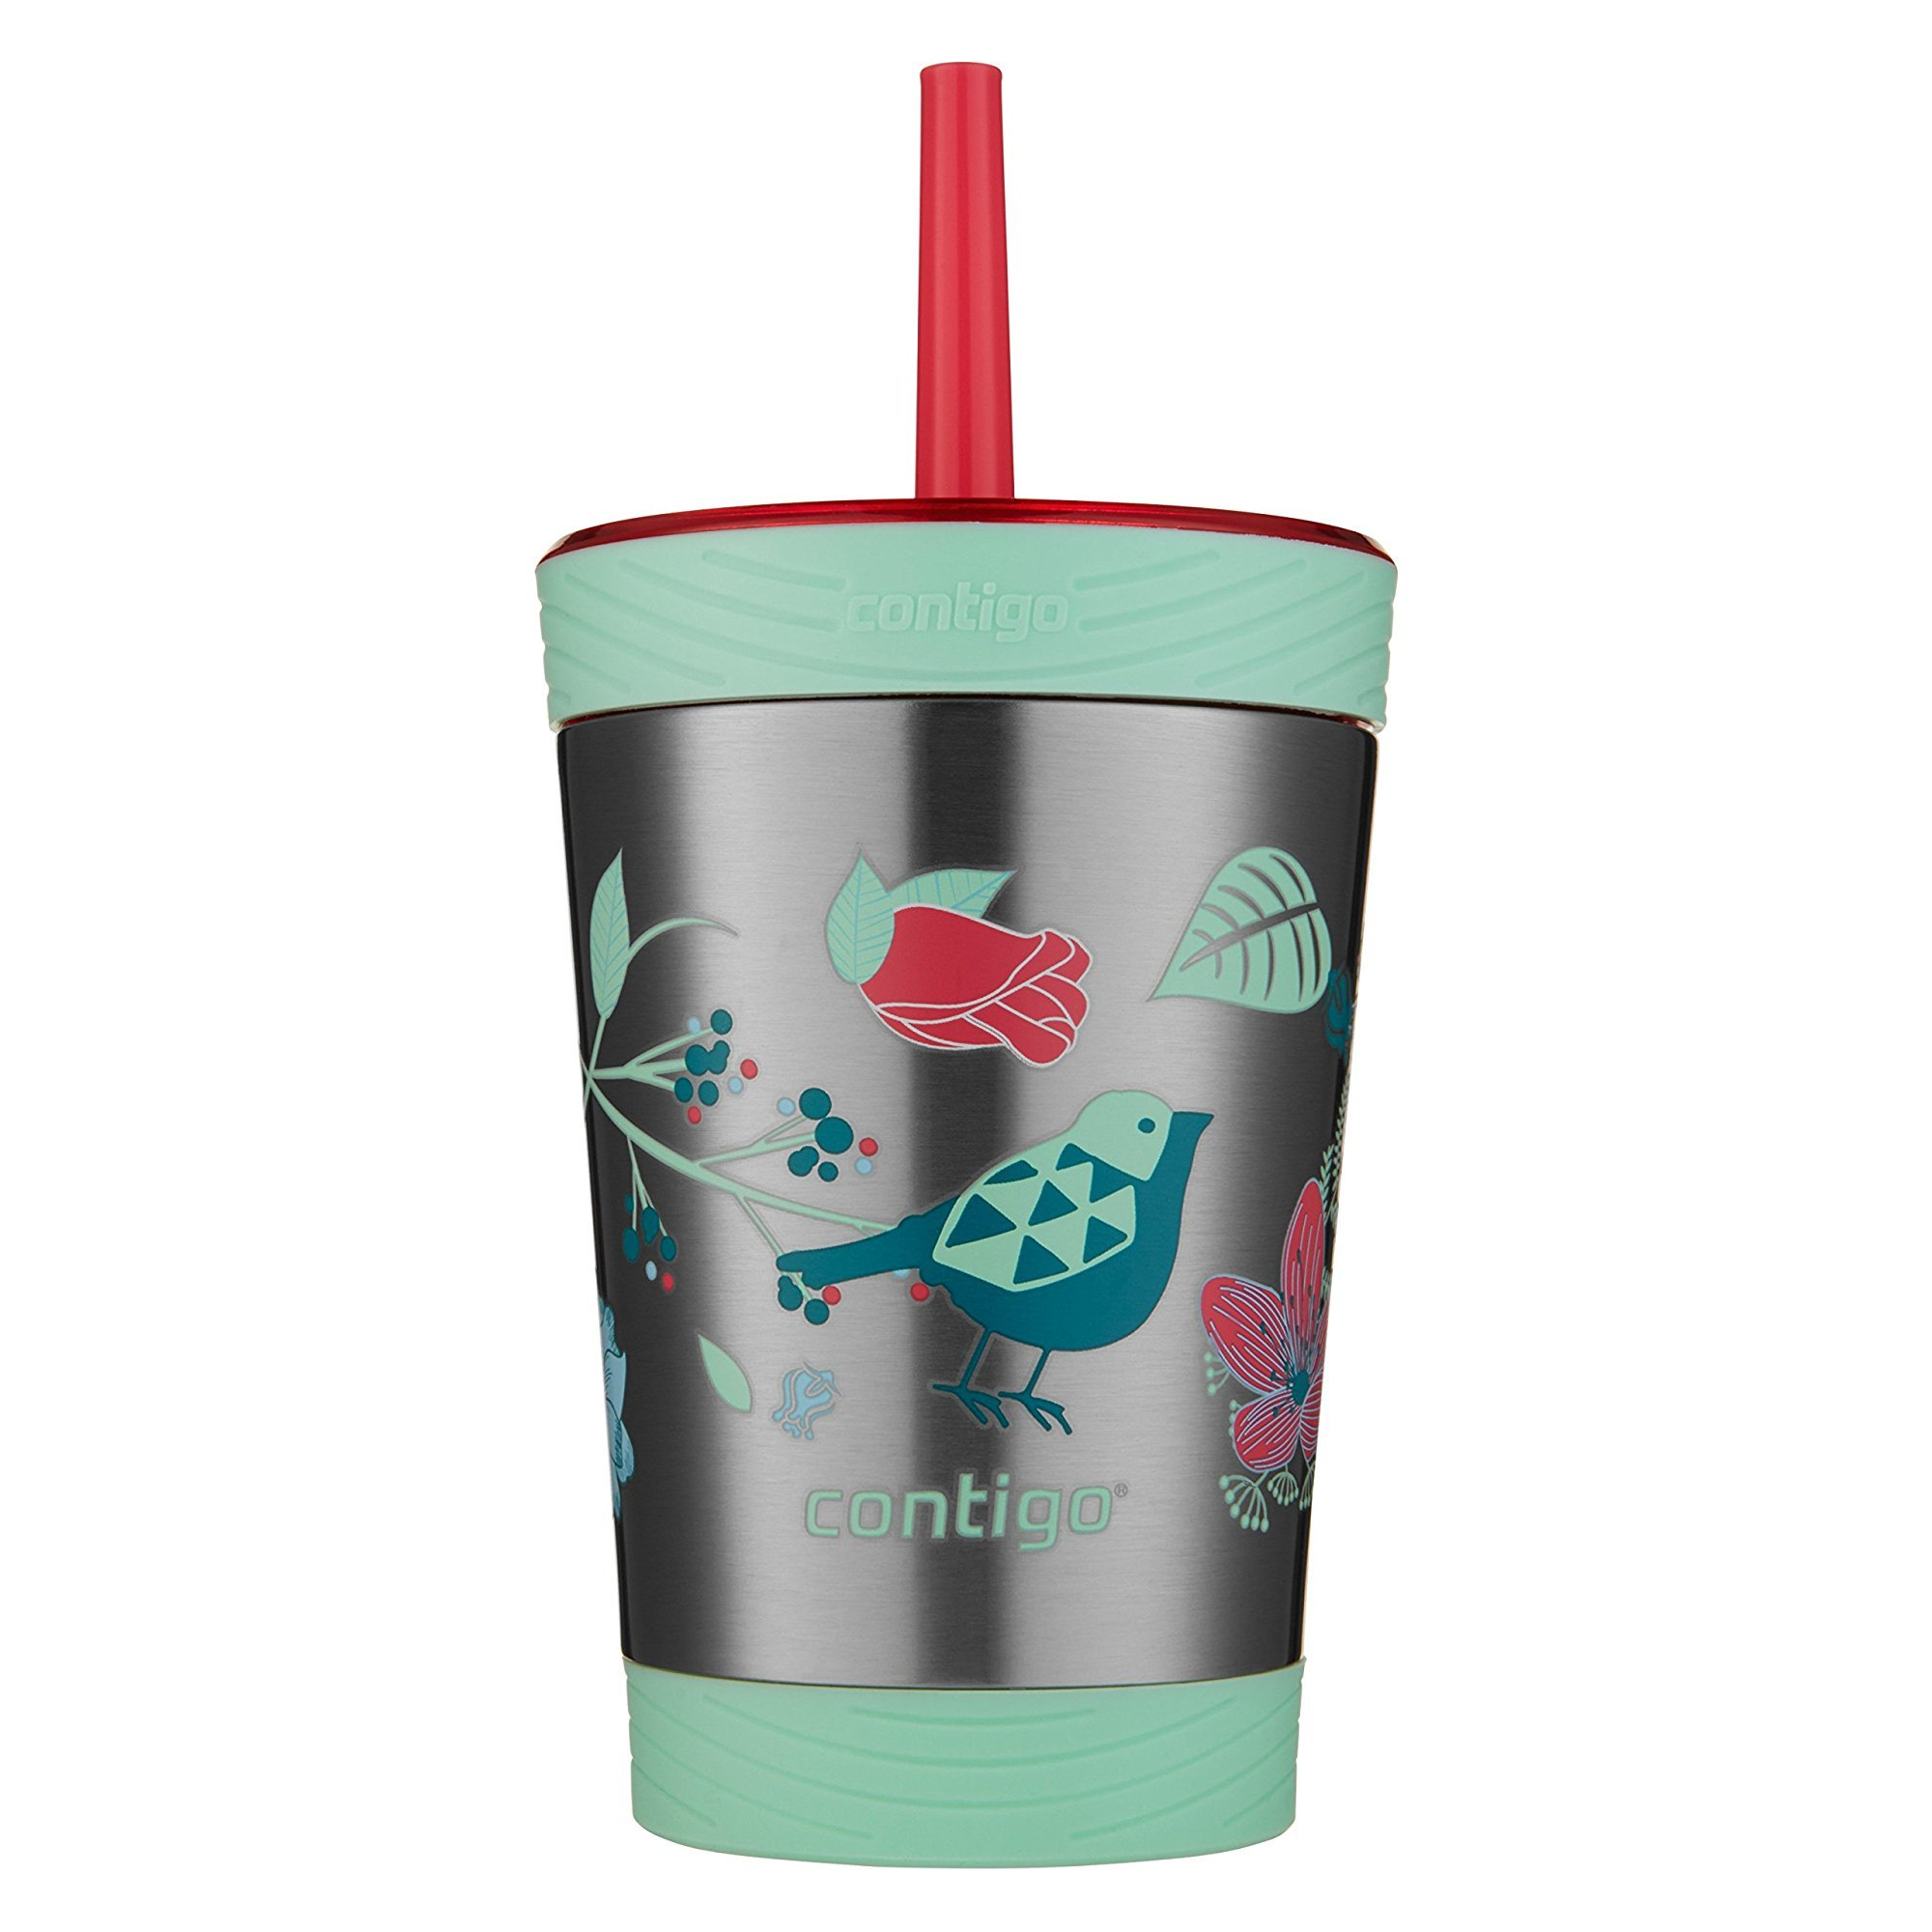 Contigo Stainless Steel Spill-Proof Kids Tumbler with Straw, 12 oz, Sprinkles with Birds & Flowers by Contigo